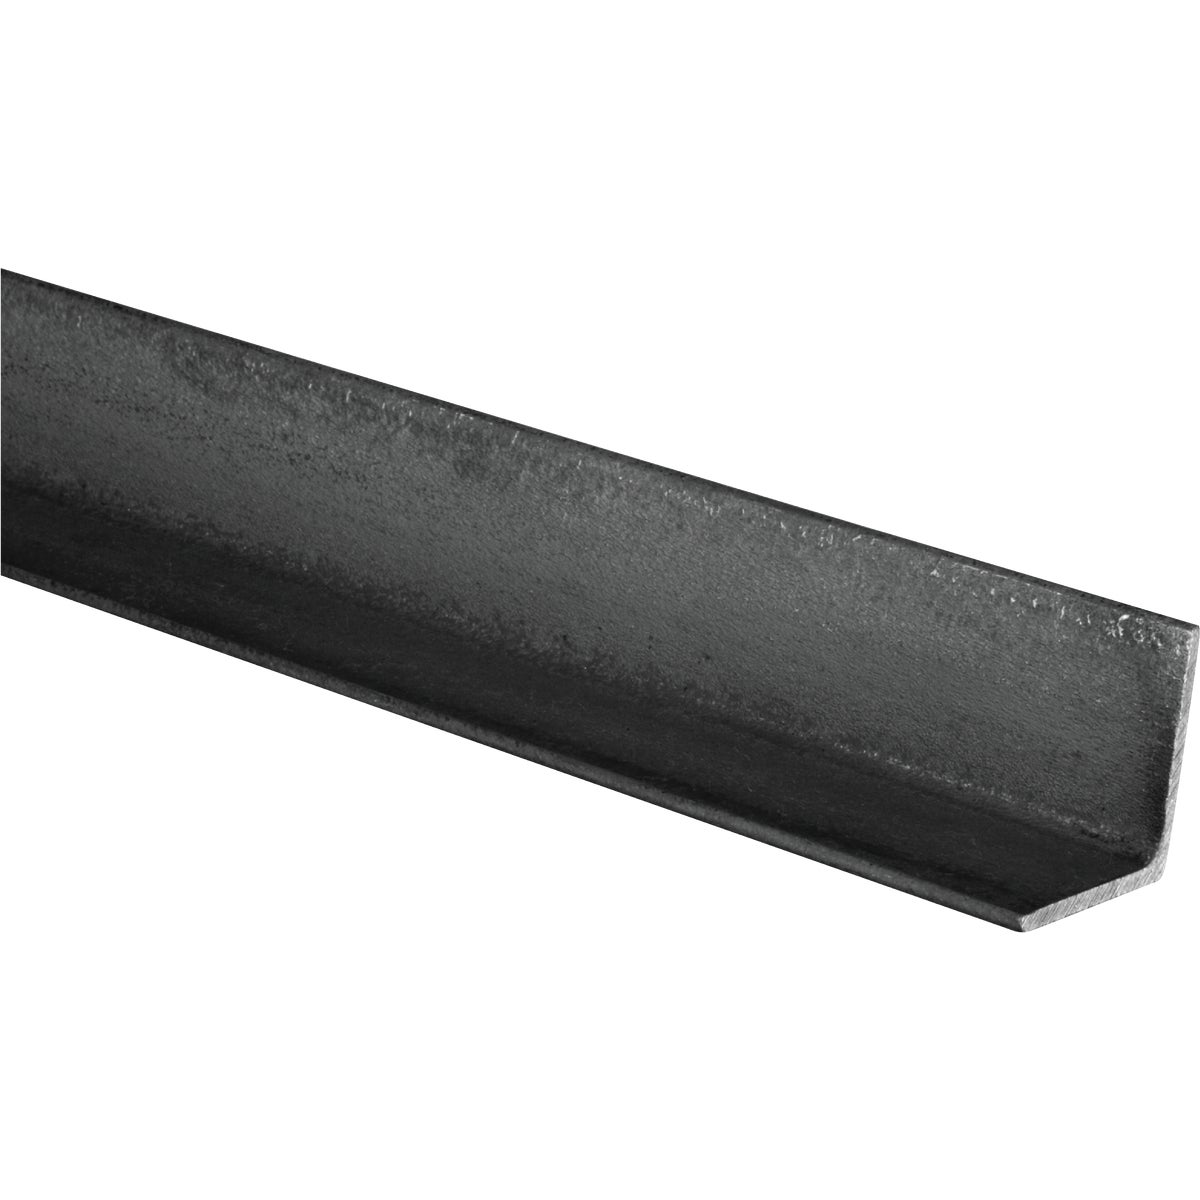 3/16X1-1/2X3'HR ST ANGLE - N316133 by National Mfg Co